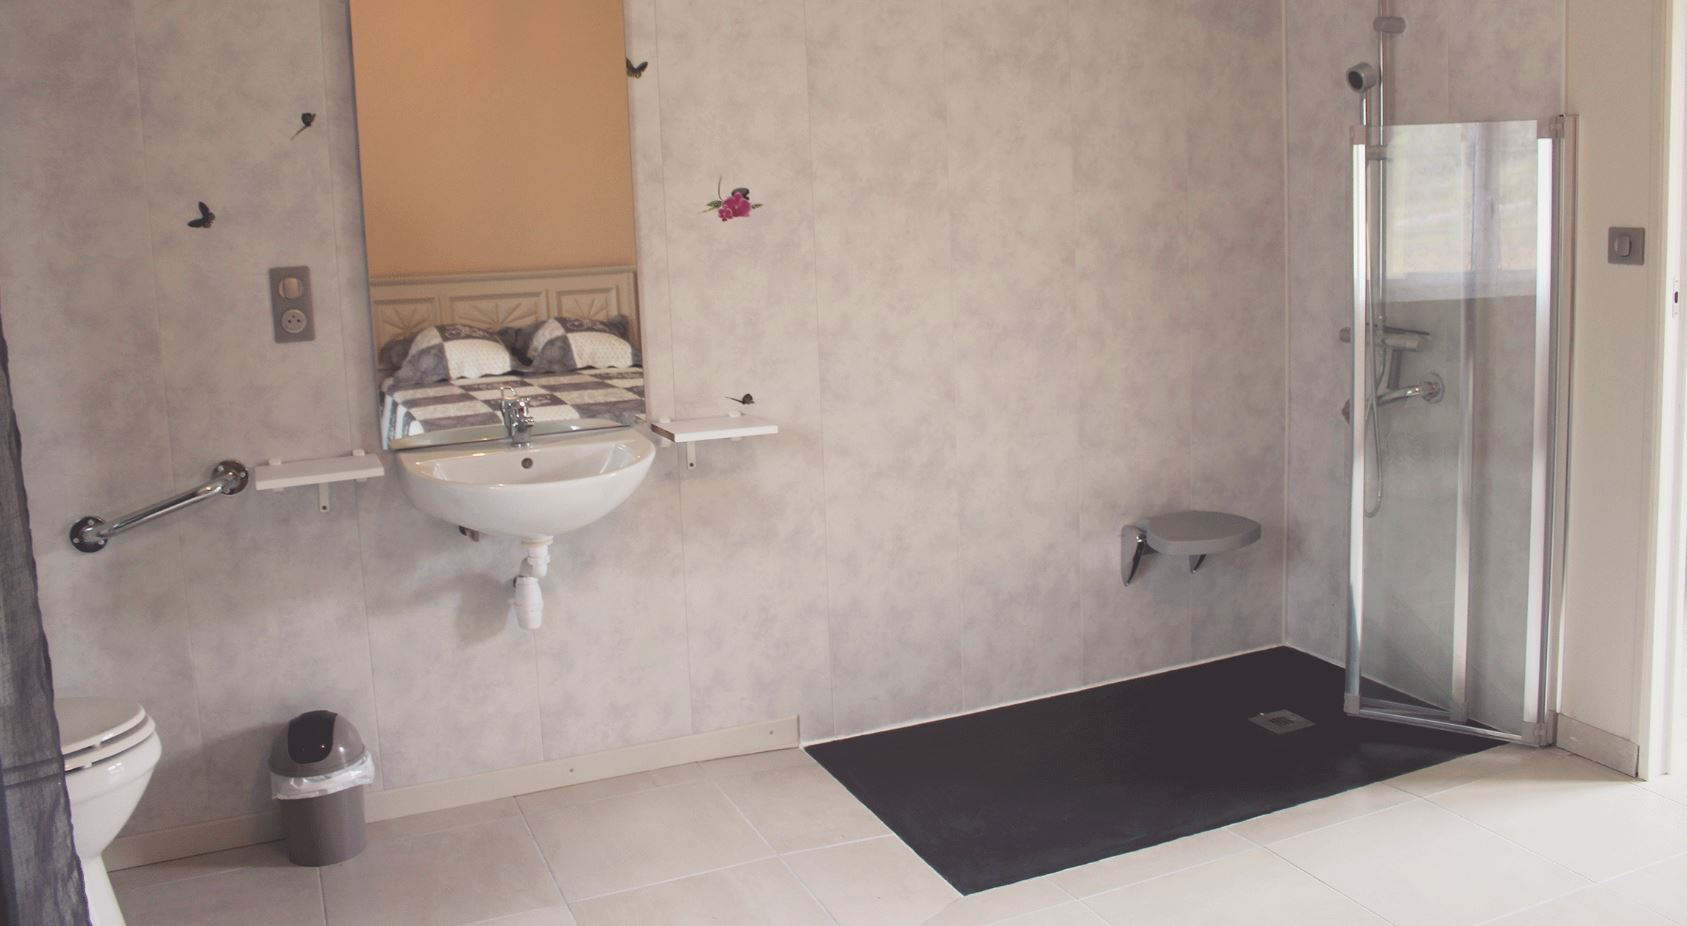 Wheelchair accessible shower room with an Italian shower, wash basin and toilet